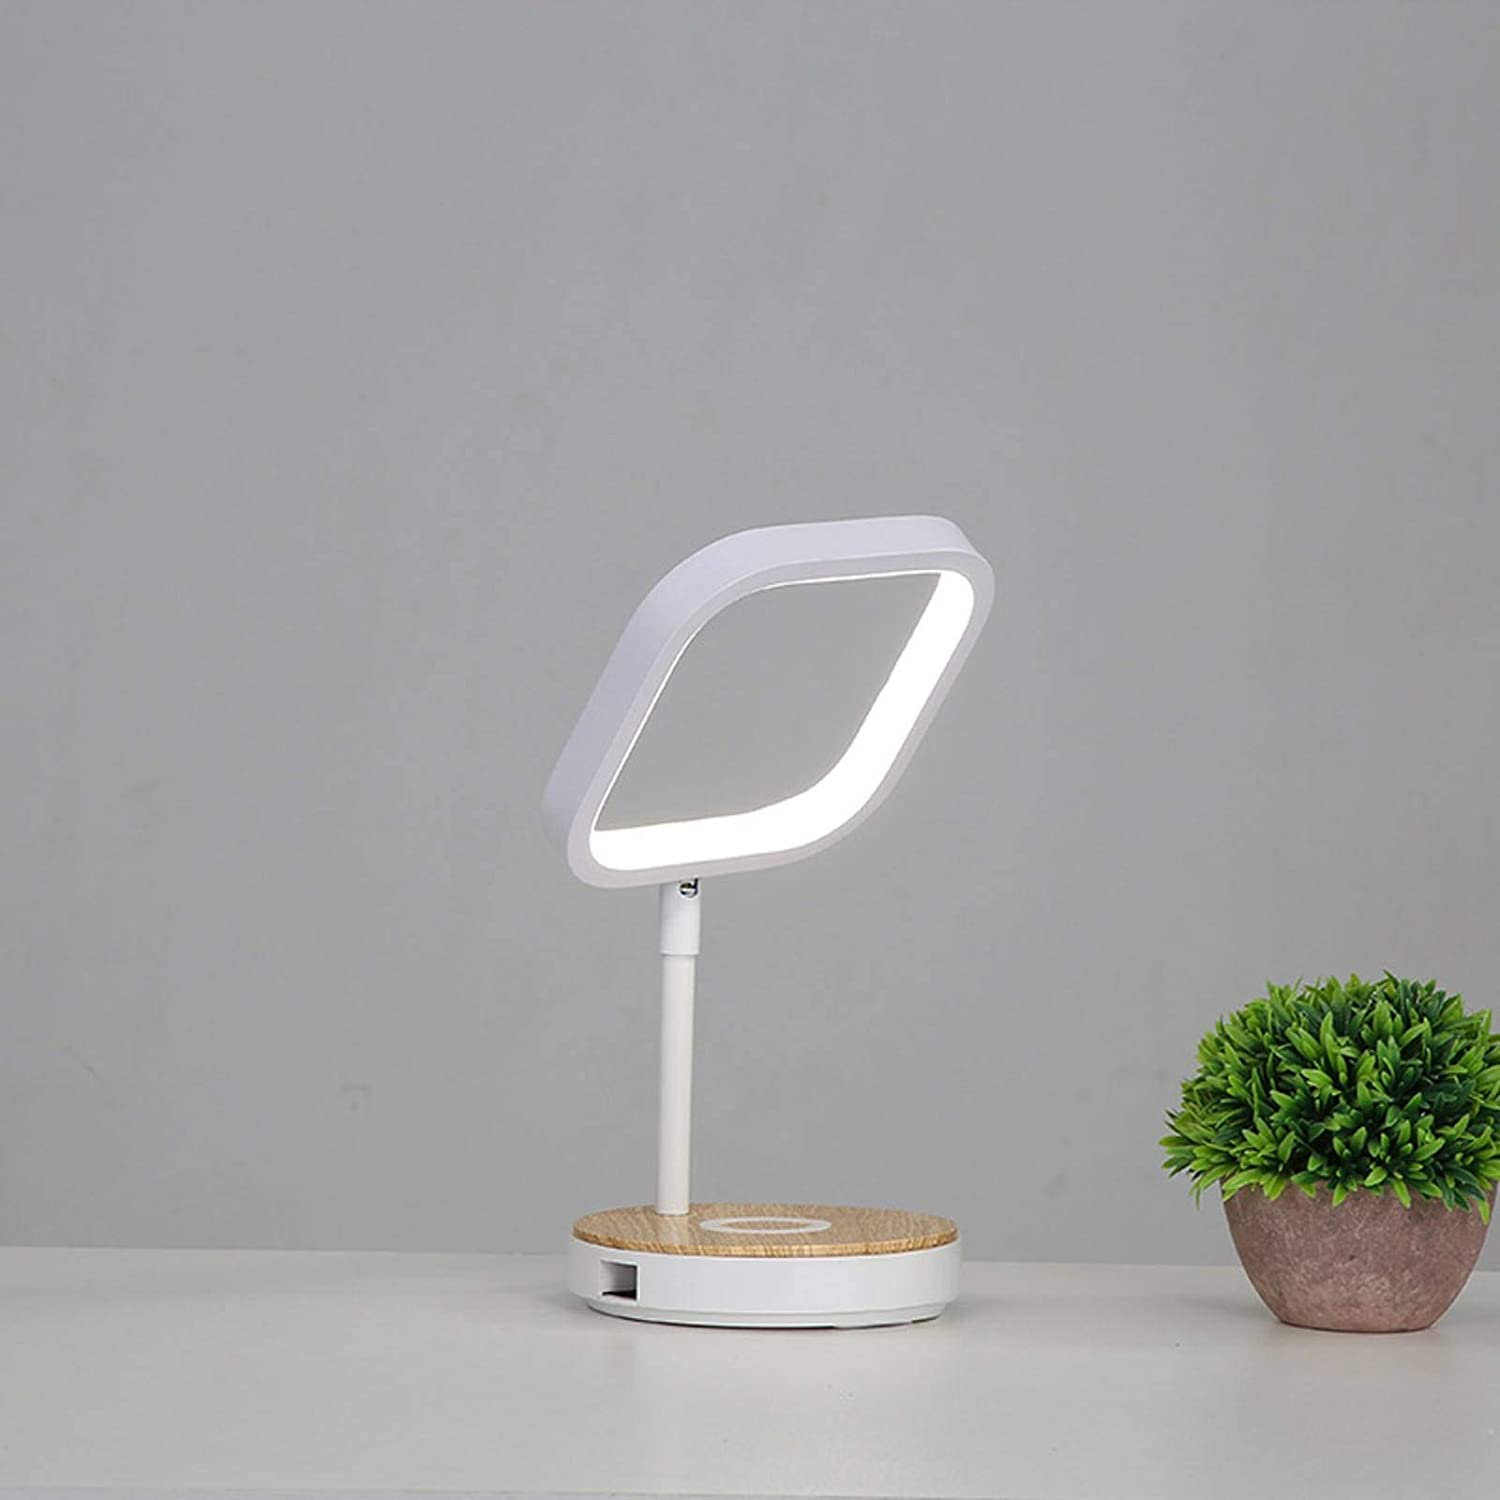 N-brand Excellence Mobile Phone OFFicial shop Wireless Multifunctional Lamp Desk Charging